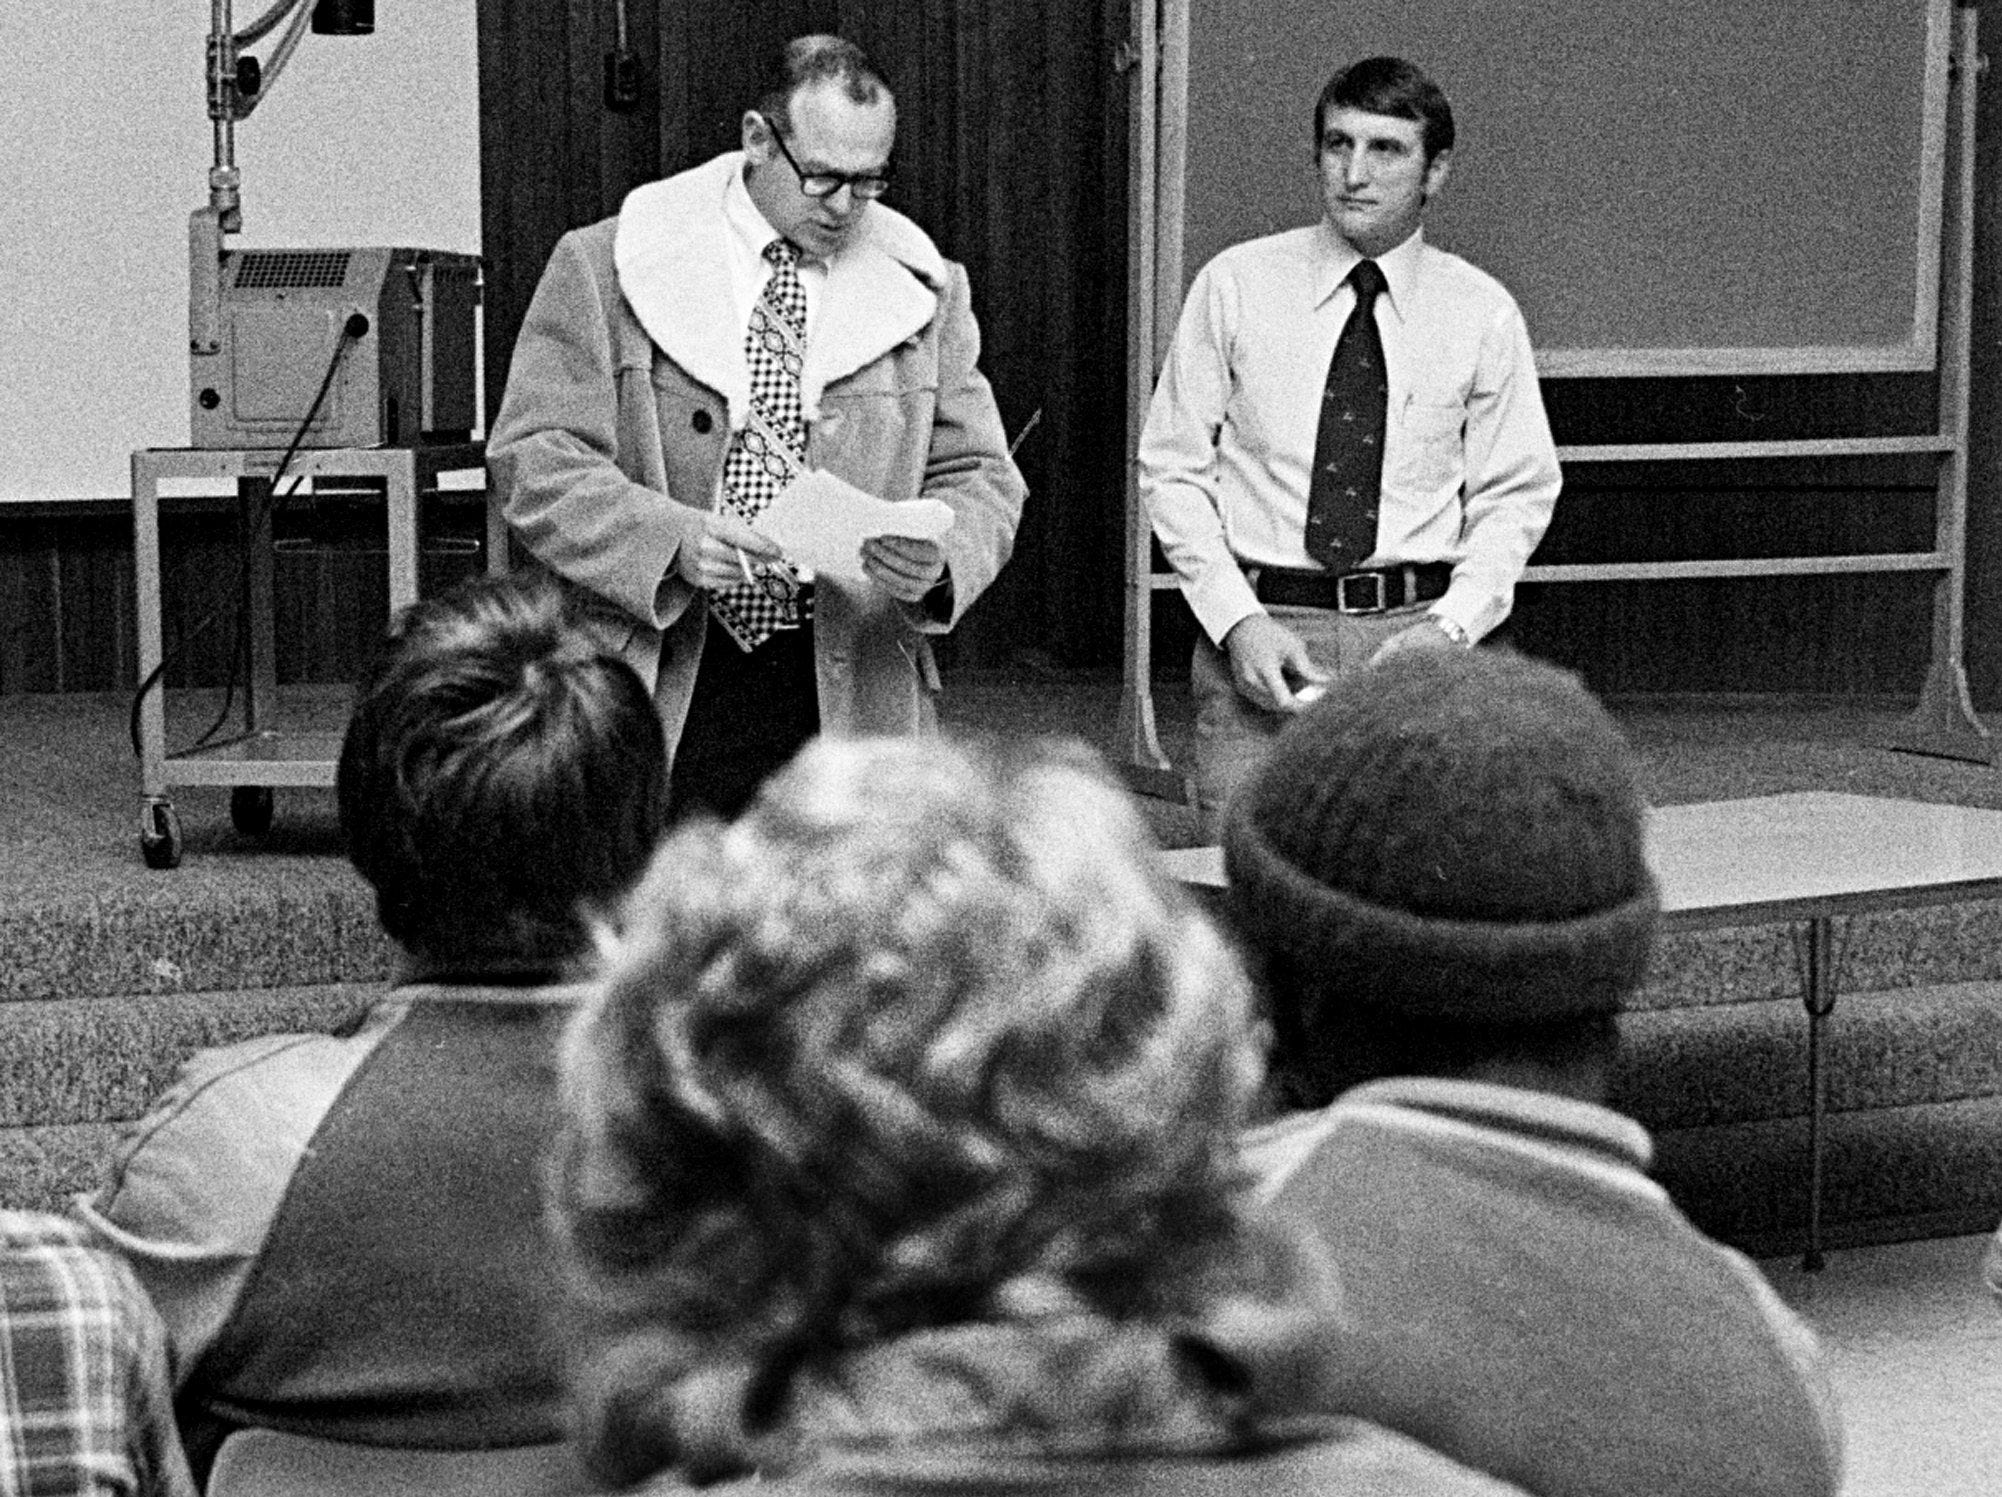 New Memphis State University head football coach Richardson Williamson (Right) meets the Tigers on 20 Jan 1975. At left is assistant coach Murray Armstrong. Williamson joins the Tigers after serving as receivers coach for Frank Broyles at the University of Arkansas for five years. Prior to that, he spent seven years as an aide to Bear Bryant at Alabama.